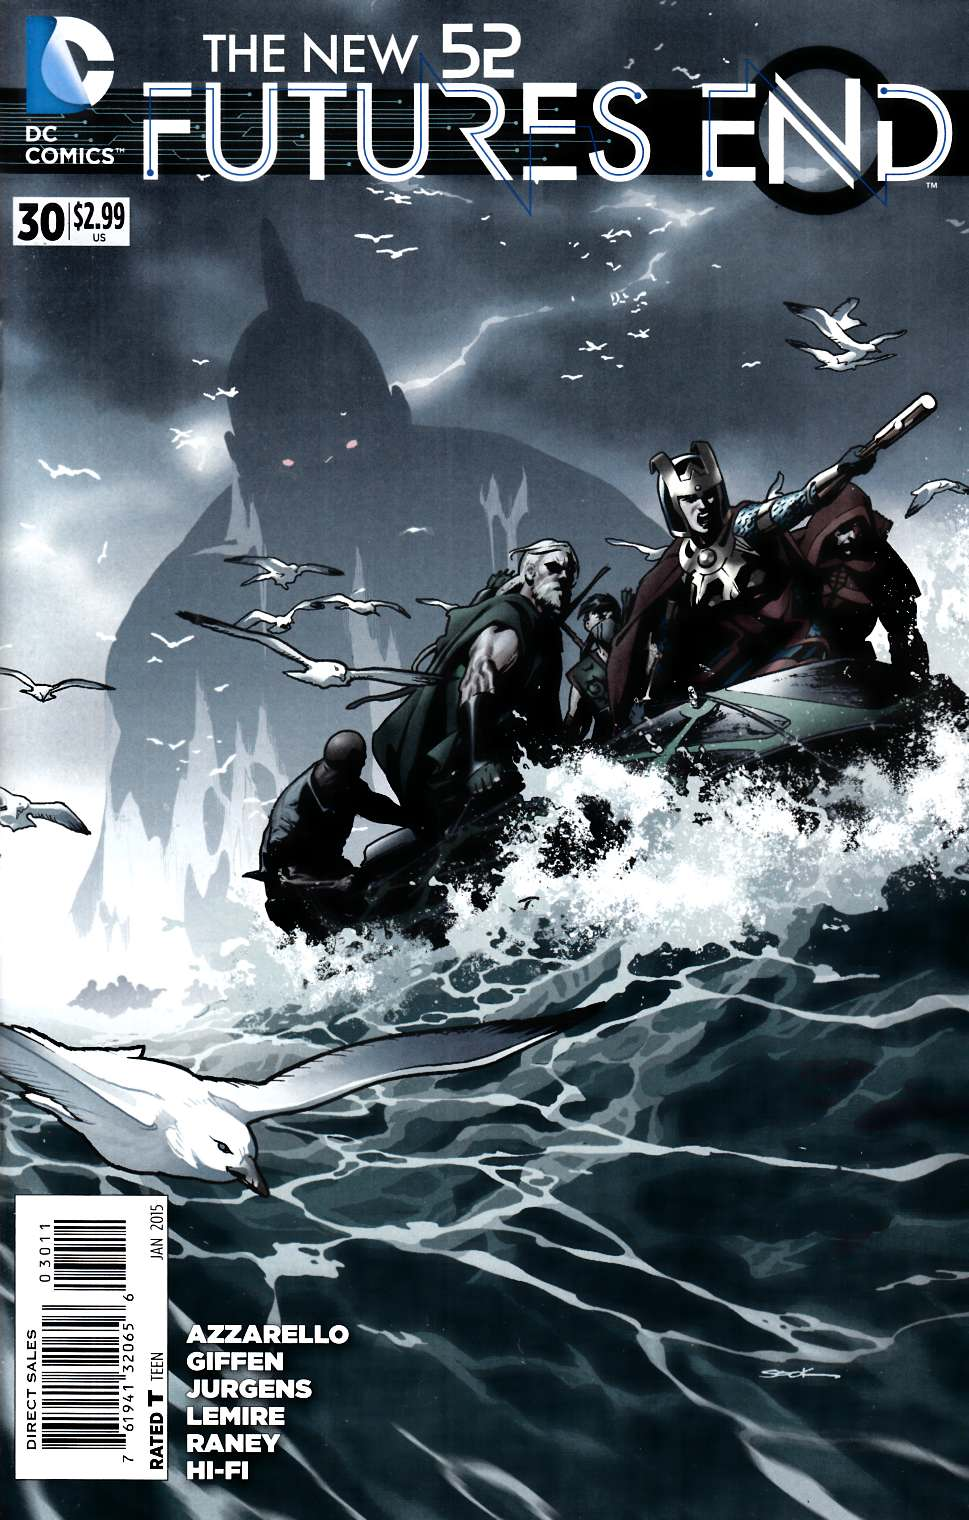 New 52 Futures End #30 (Weekly) [DC Comic] THUMBNAIL